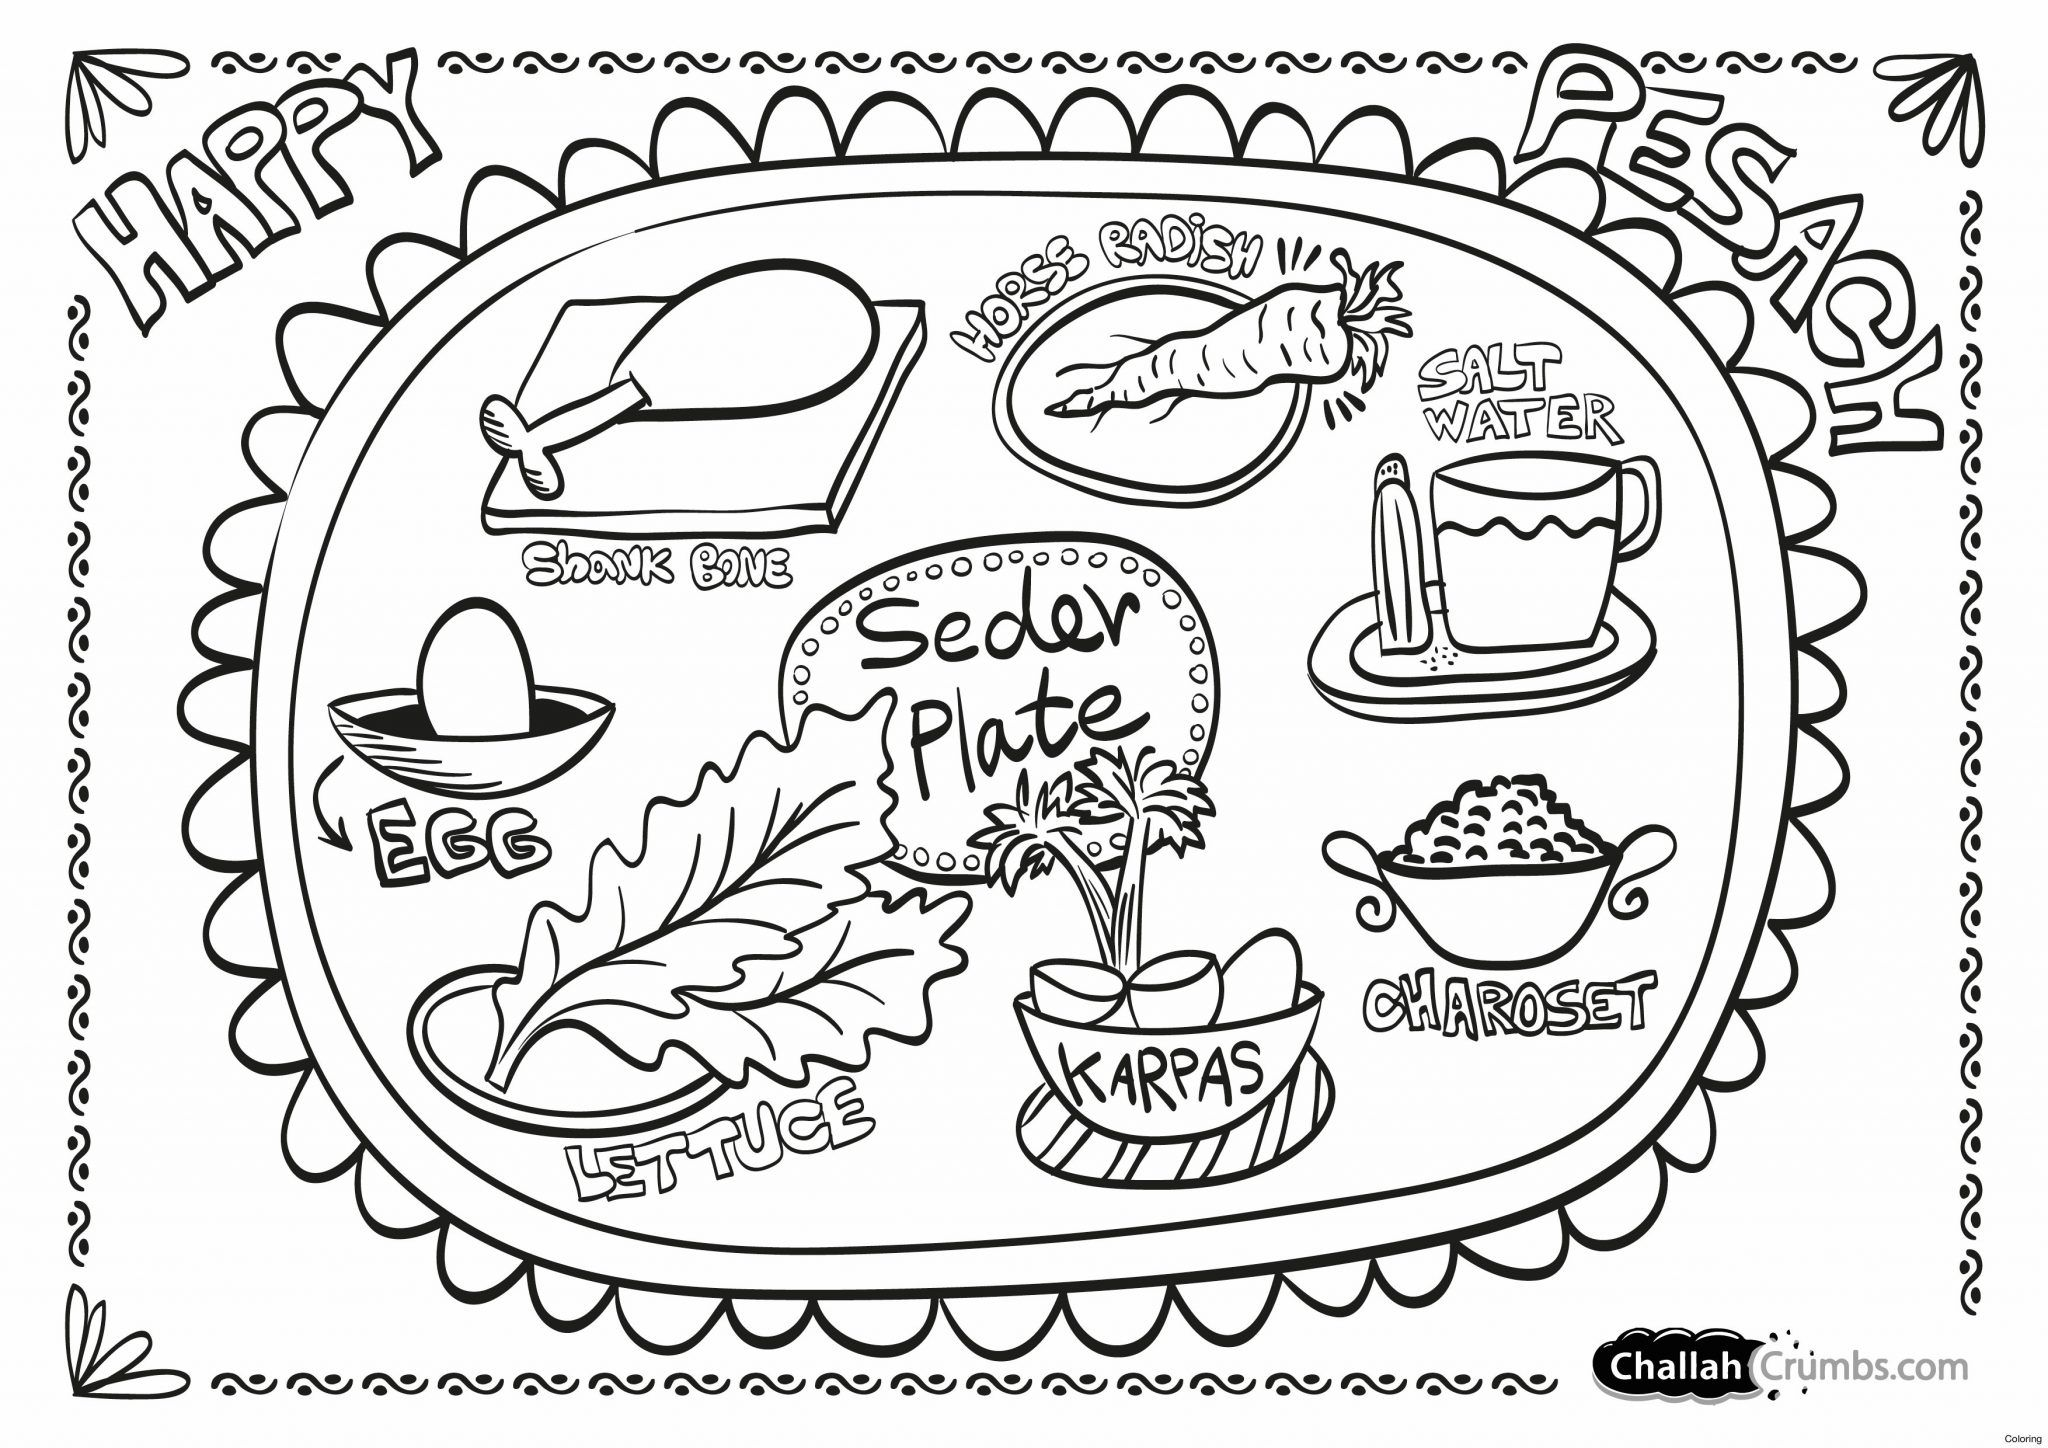 Passover Coloring Pages Printable Free 2020 Printable Calendar Blank Templates Coloring Pages Holidays In 2020 Seder Plate Passover Seder Plate Seder